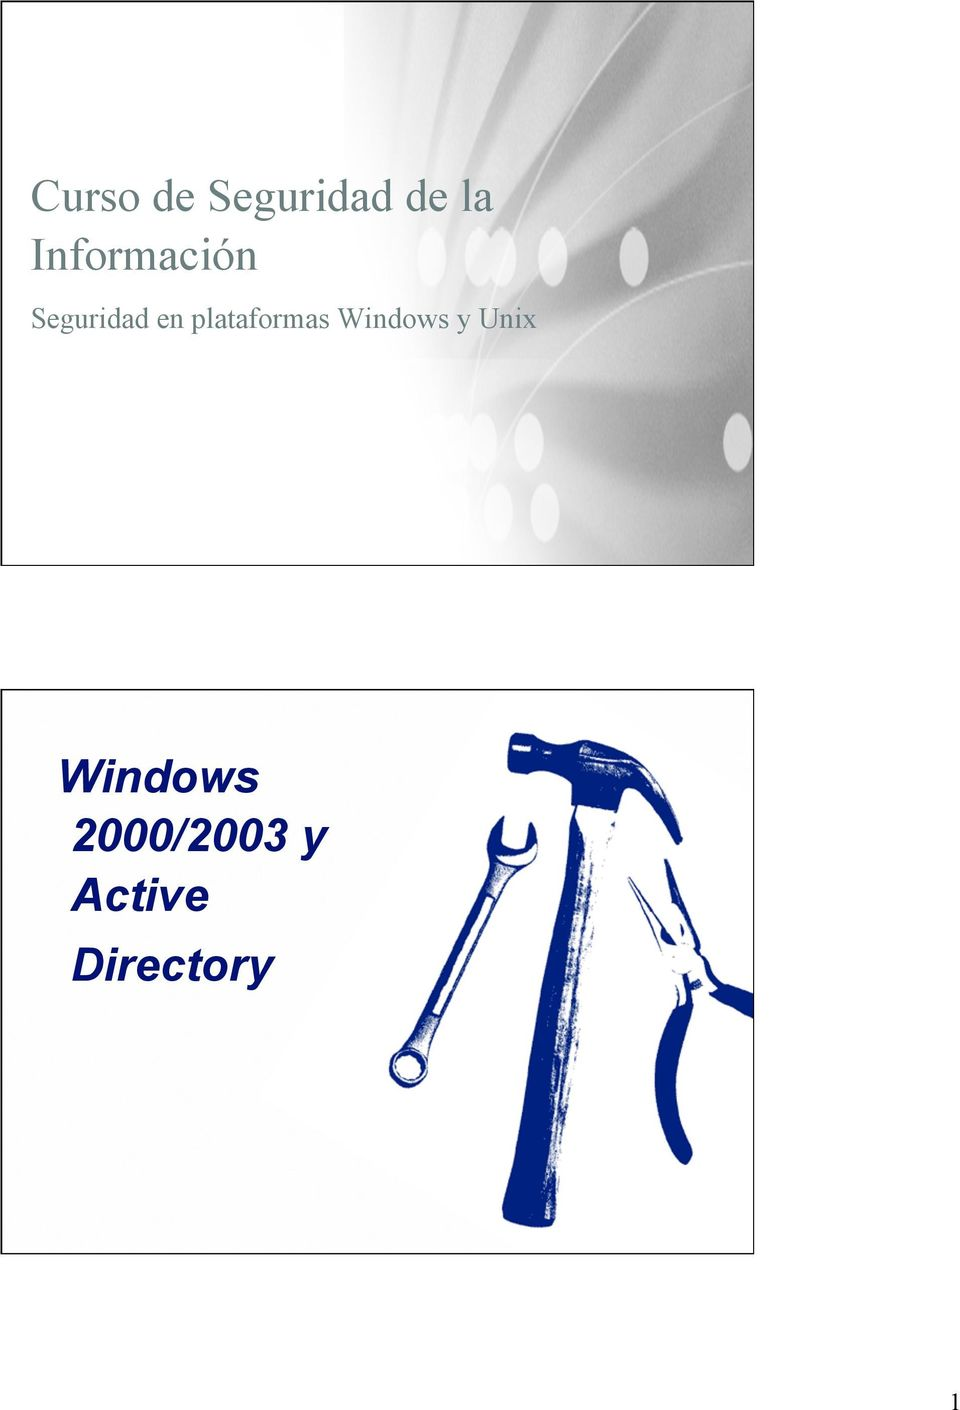 plataformas Windows y Unix Haga clic para cambiar el estilo de título Windows Haga clic para modificar